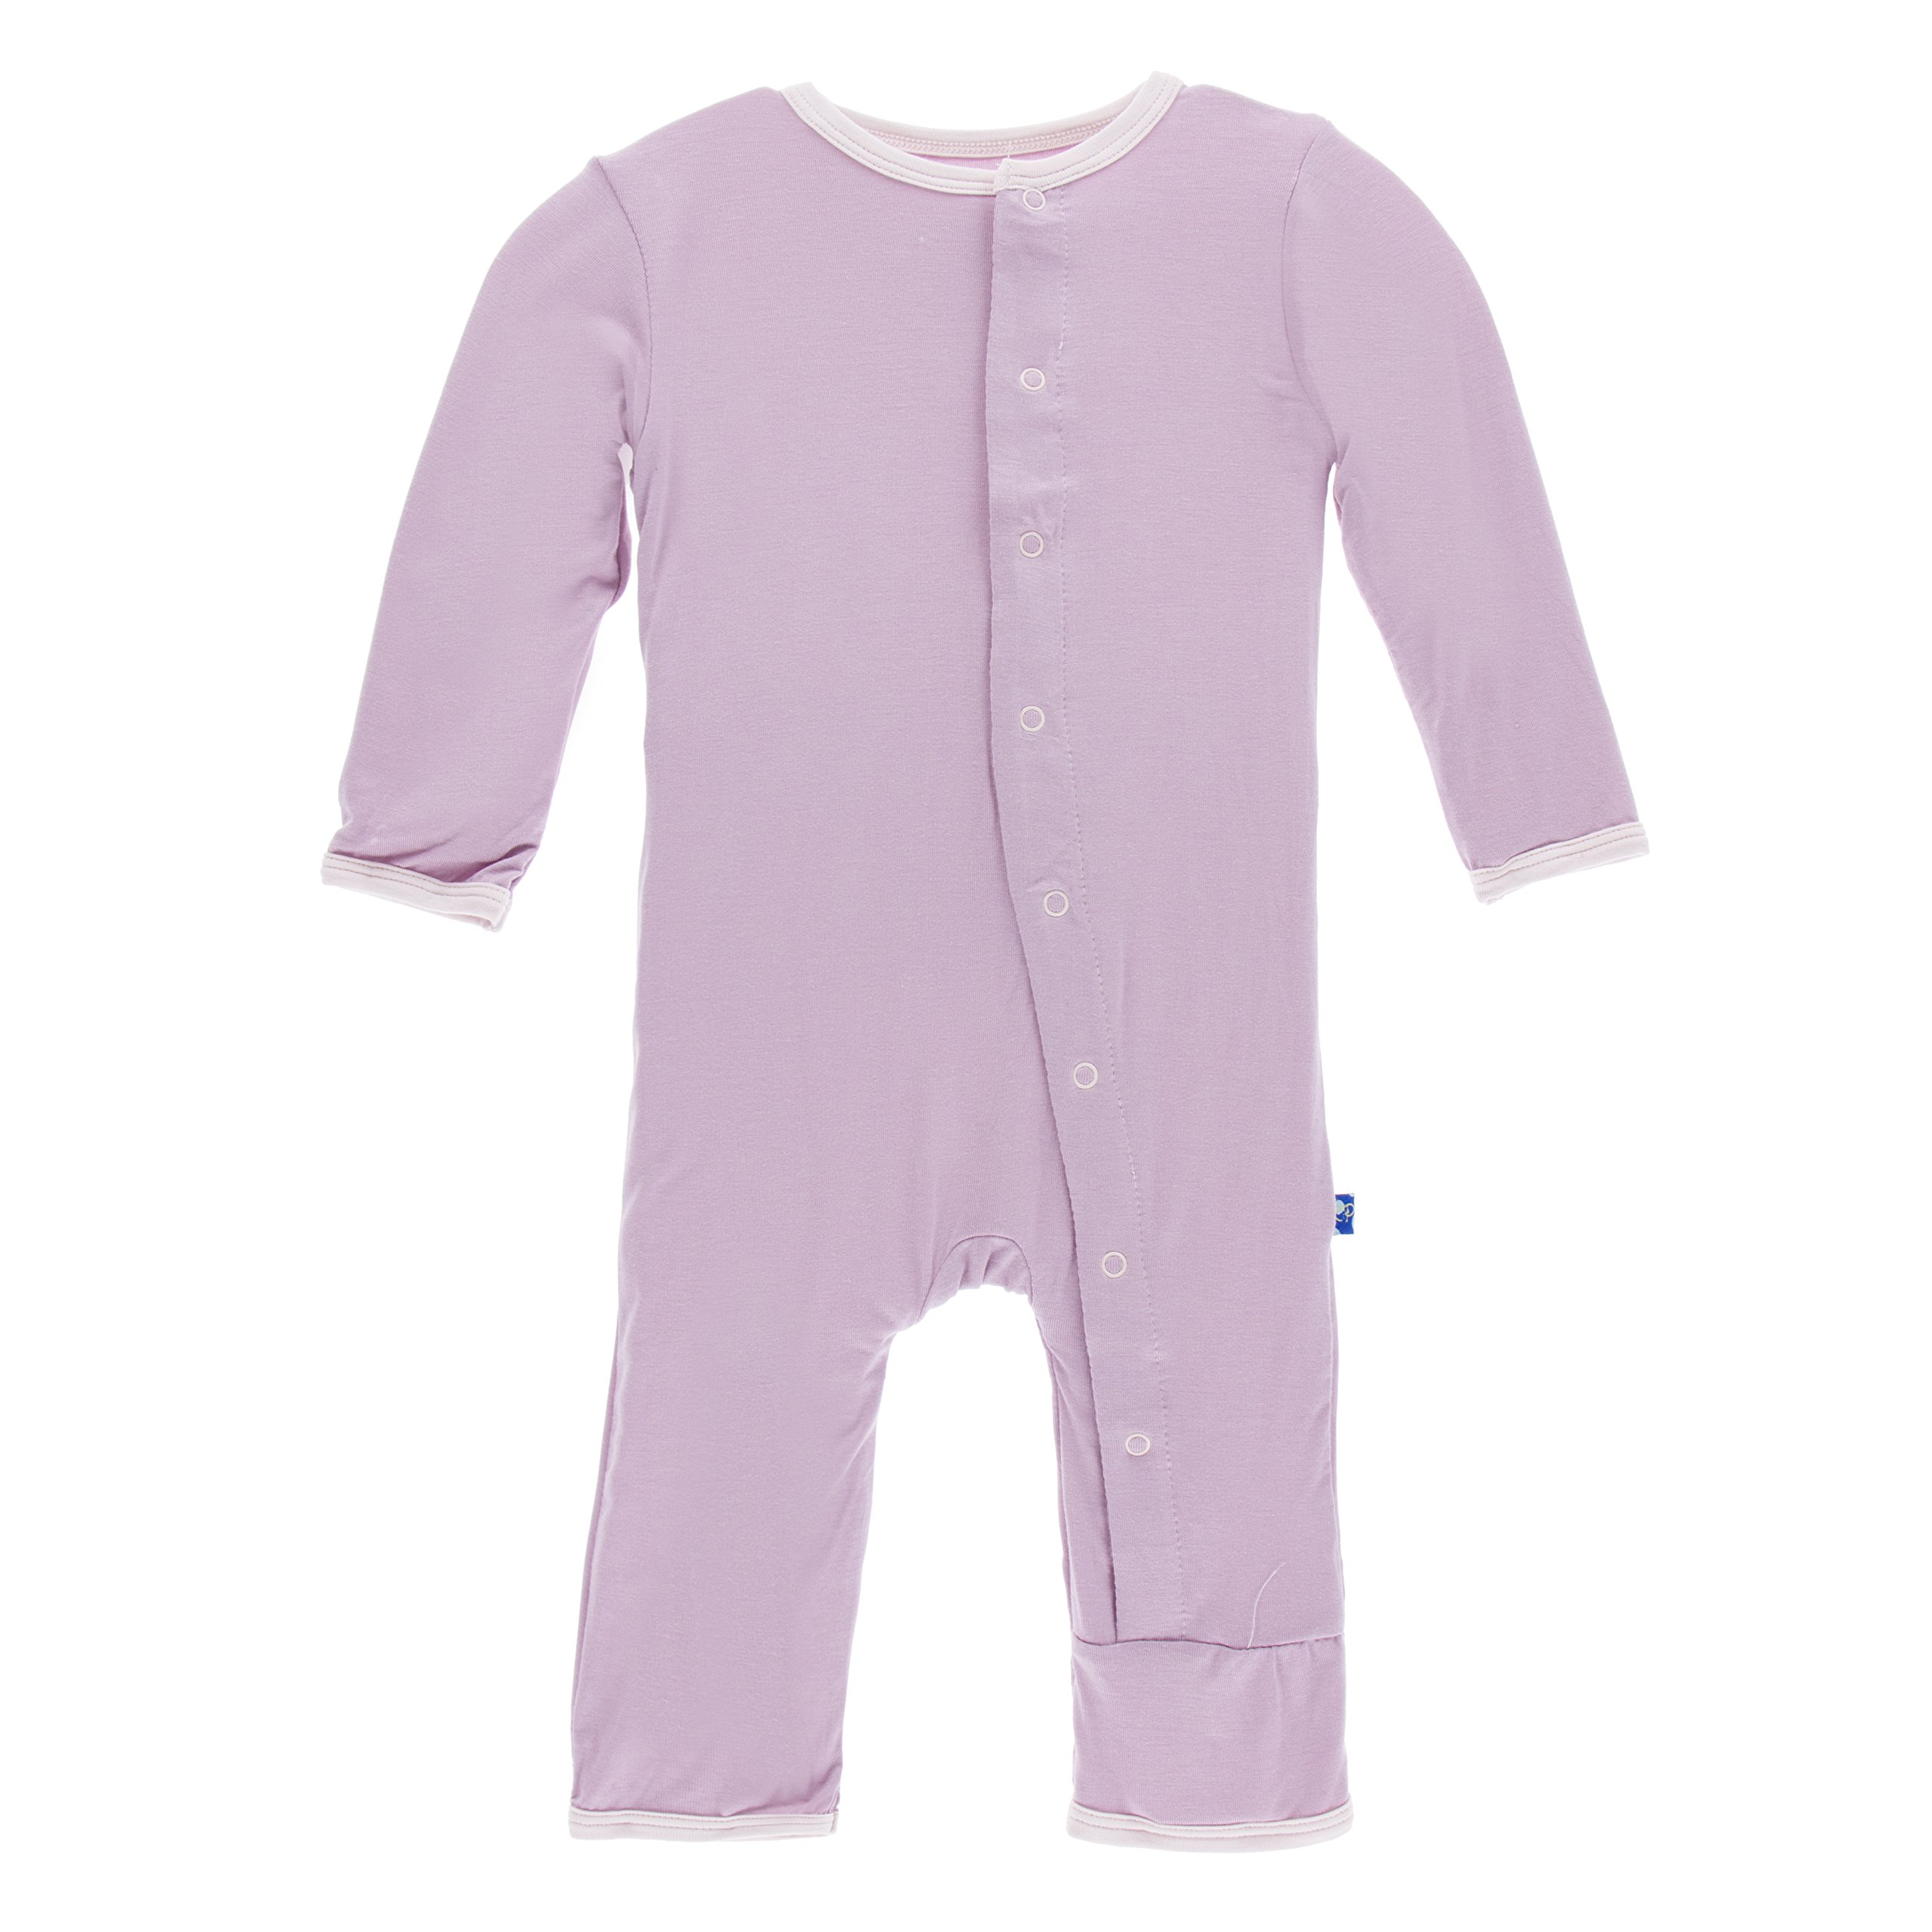 Kickee Pants Big Girls' Fitted Applique Coverall in Sweet Pea Poppies, 4T